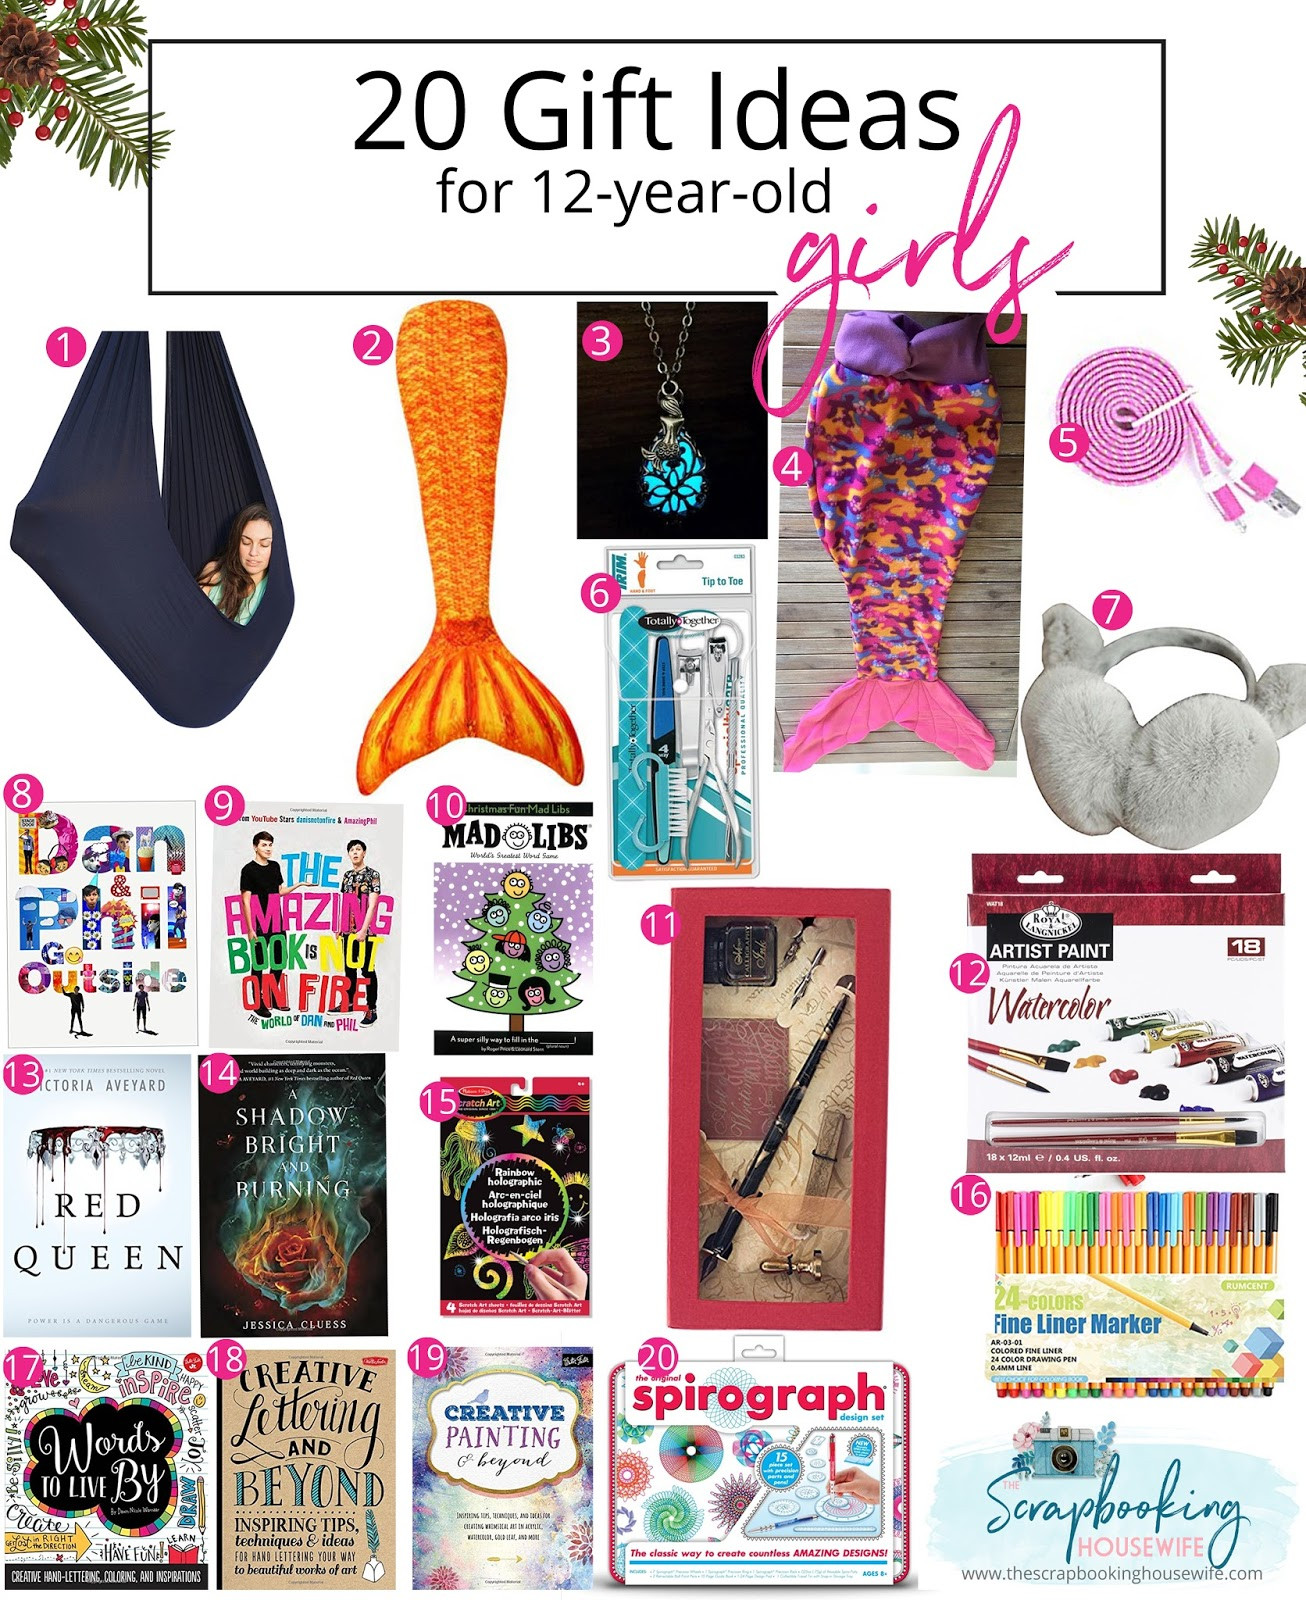 Best ideas about Christmas Gift Ideas For 12 Yr Old Girl . Save or Pin Ellabella Designs 13 GIFT IDEAS FOR TODDLERS Now.